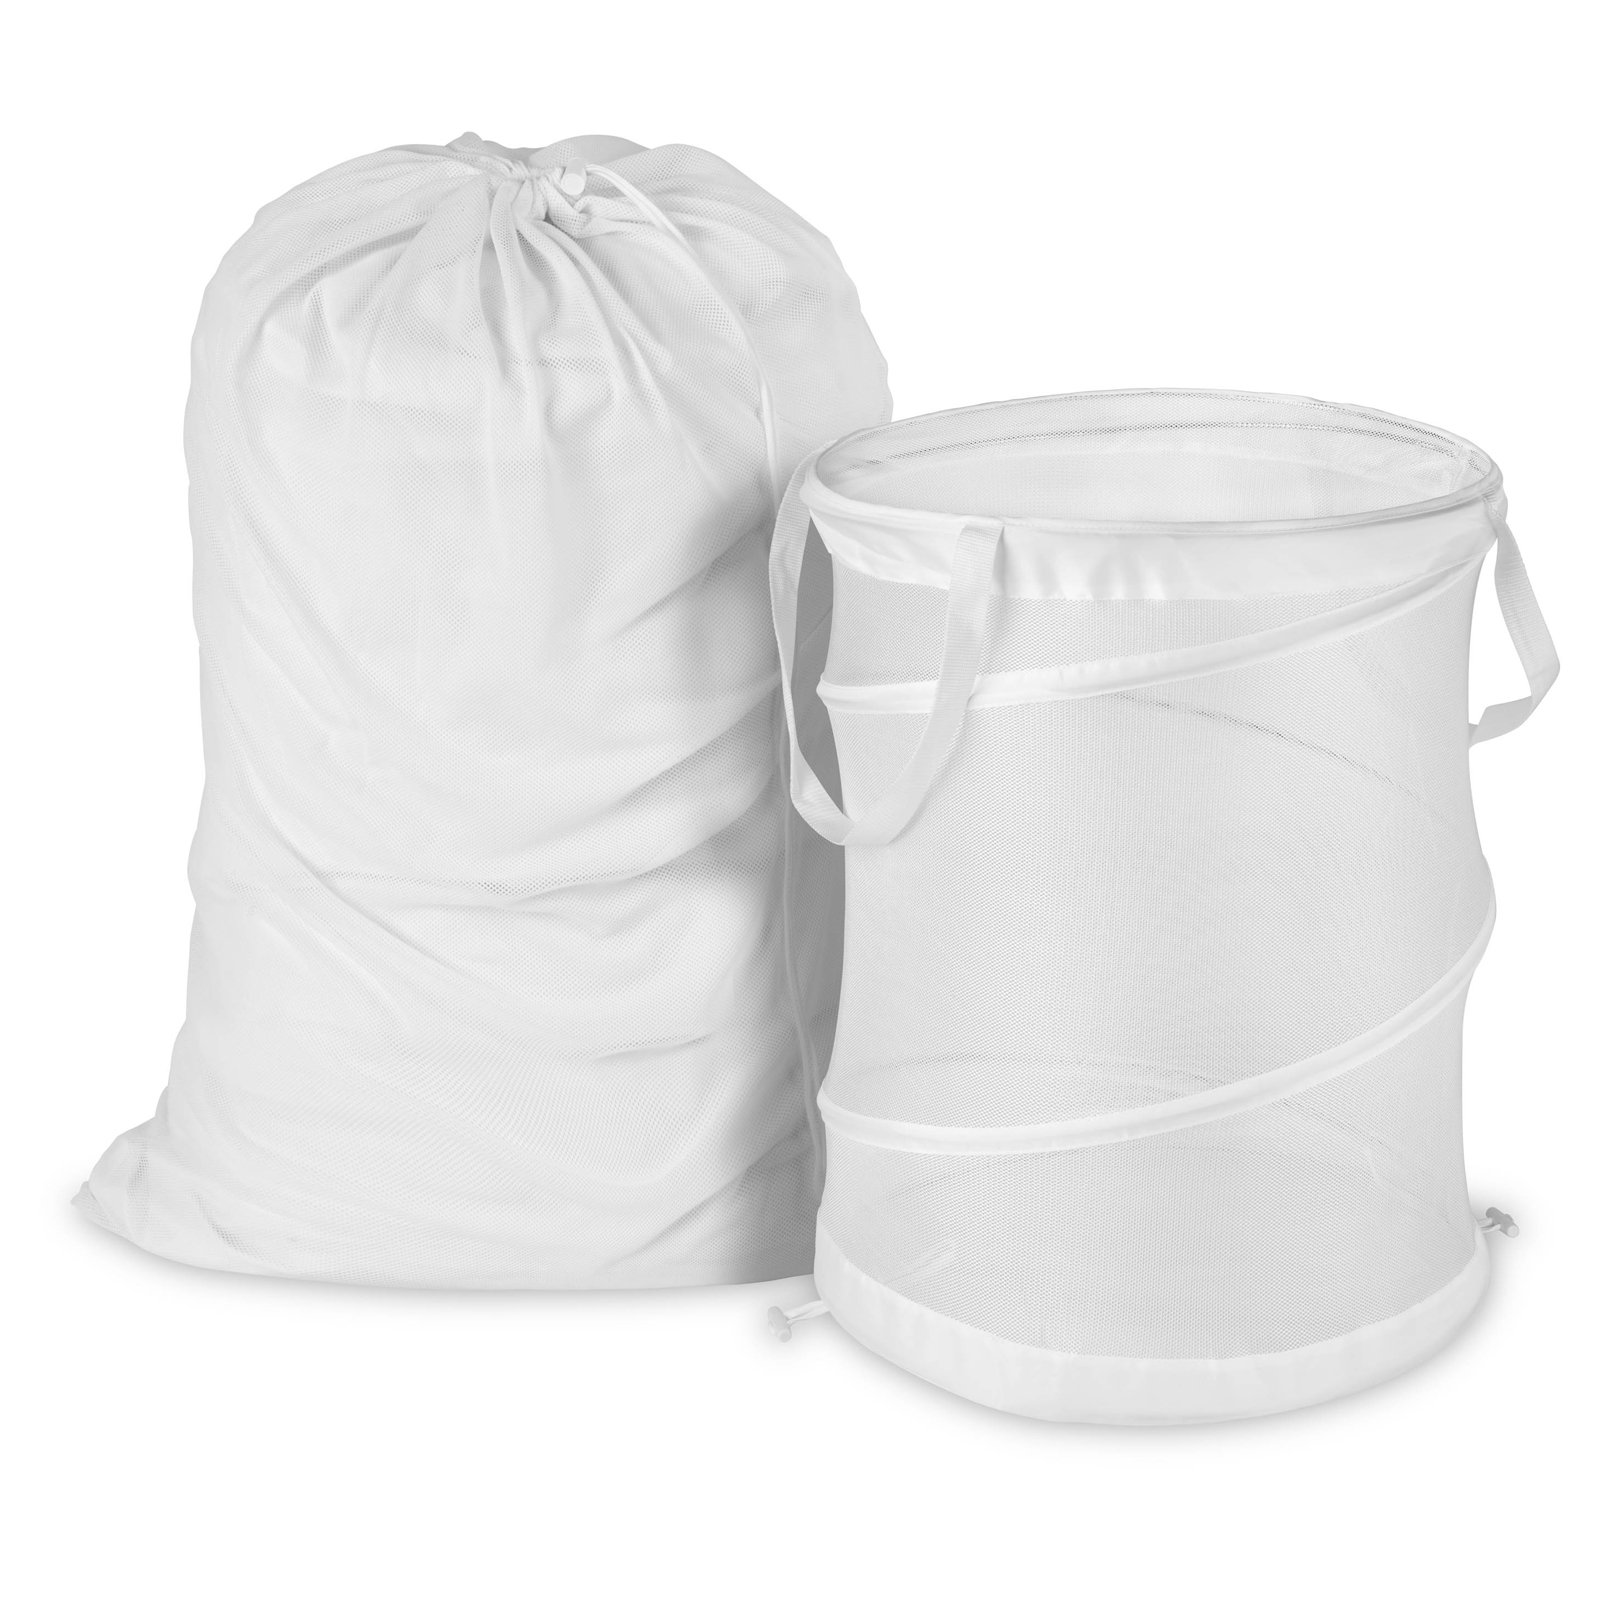 From 6 99 Mesh Laundry Bag White Wash Bag Washing Bags For